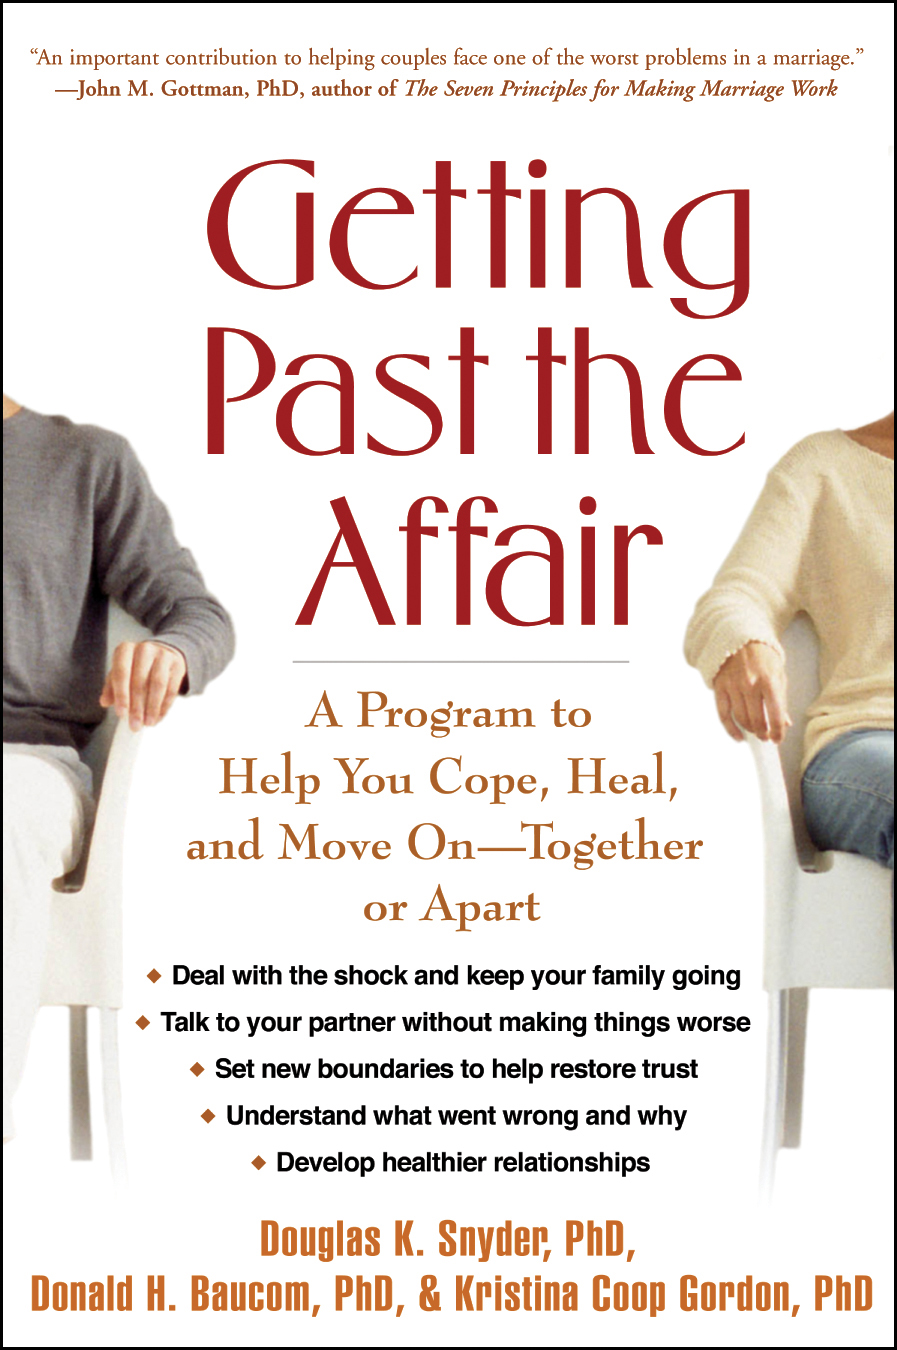 Coping after an affair